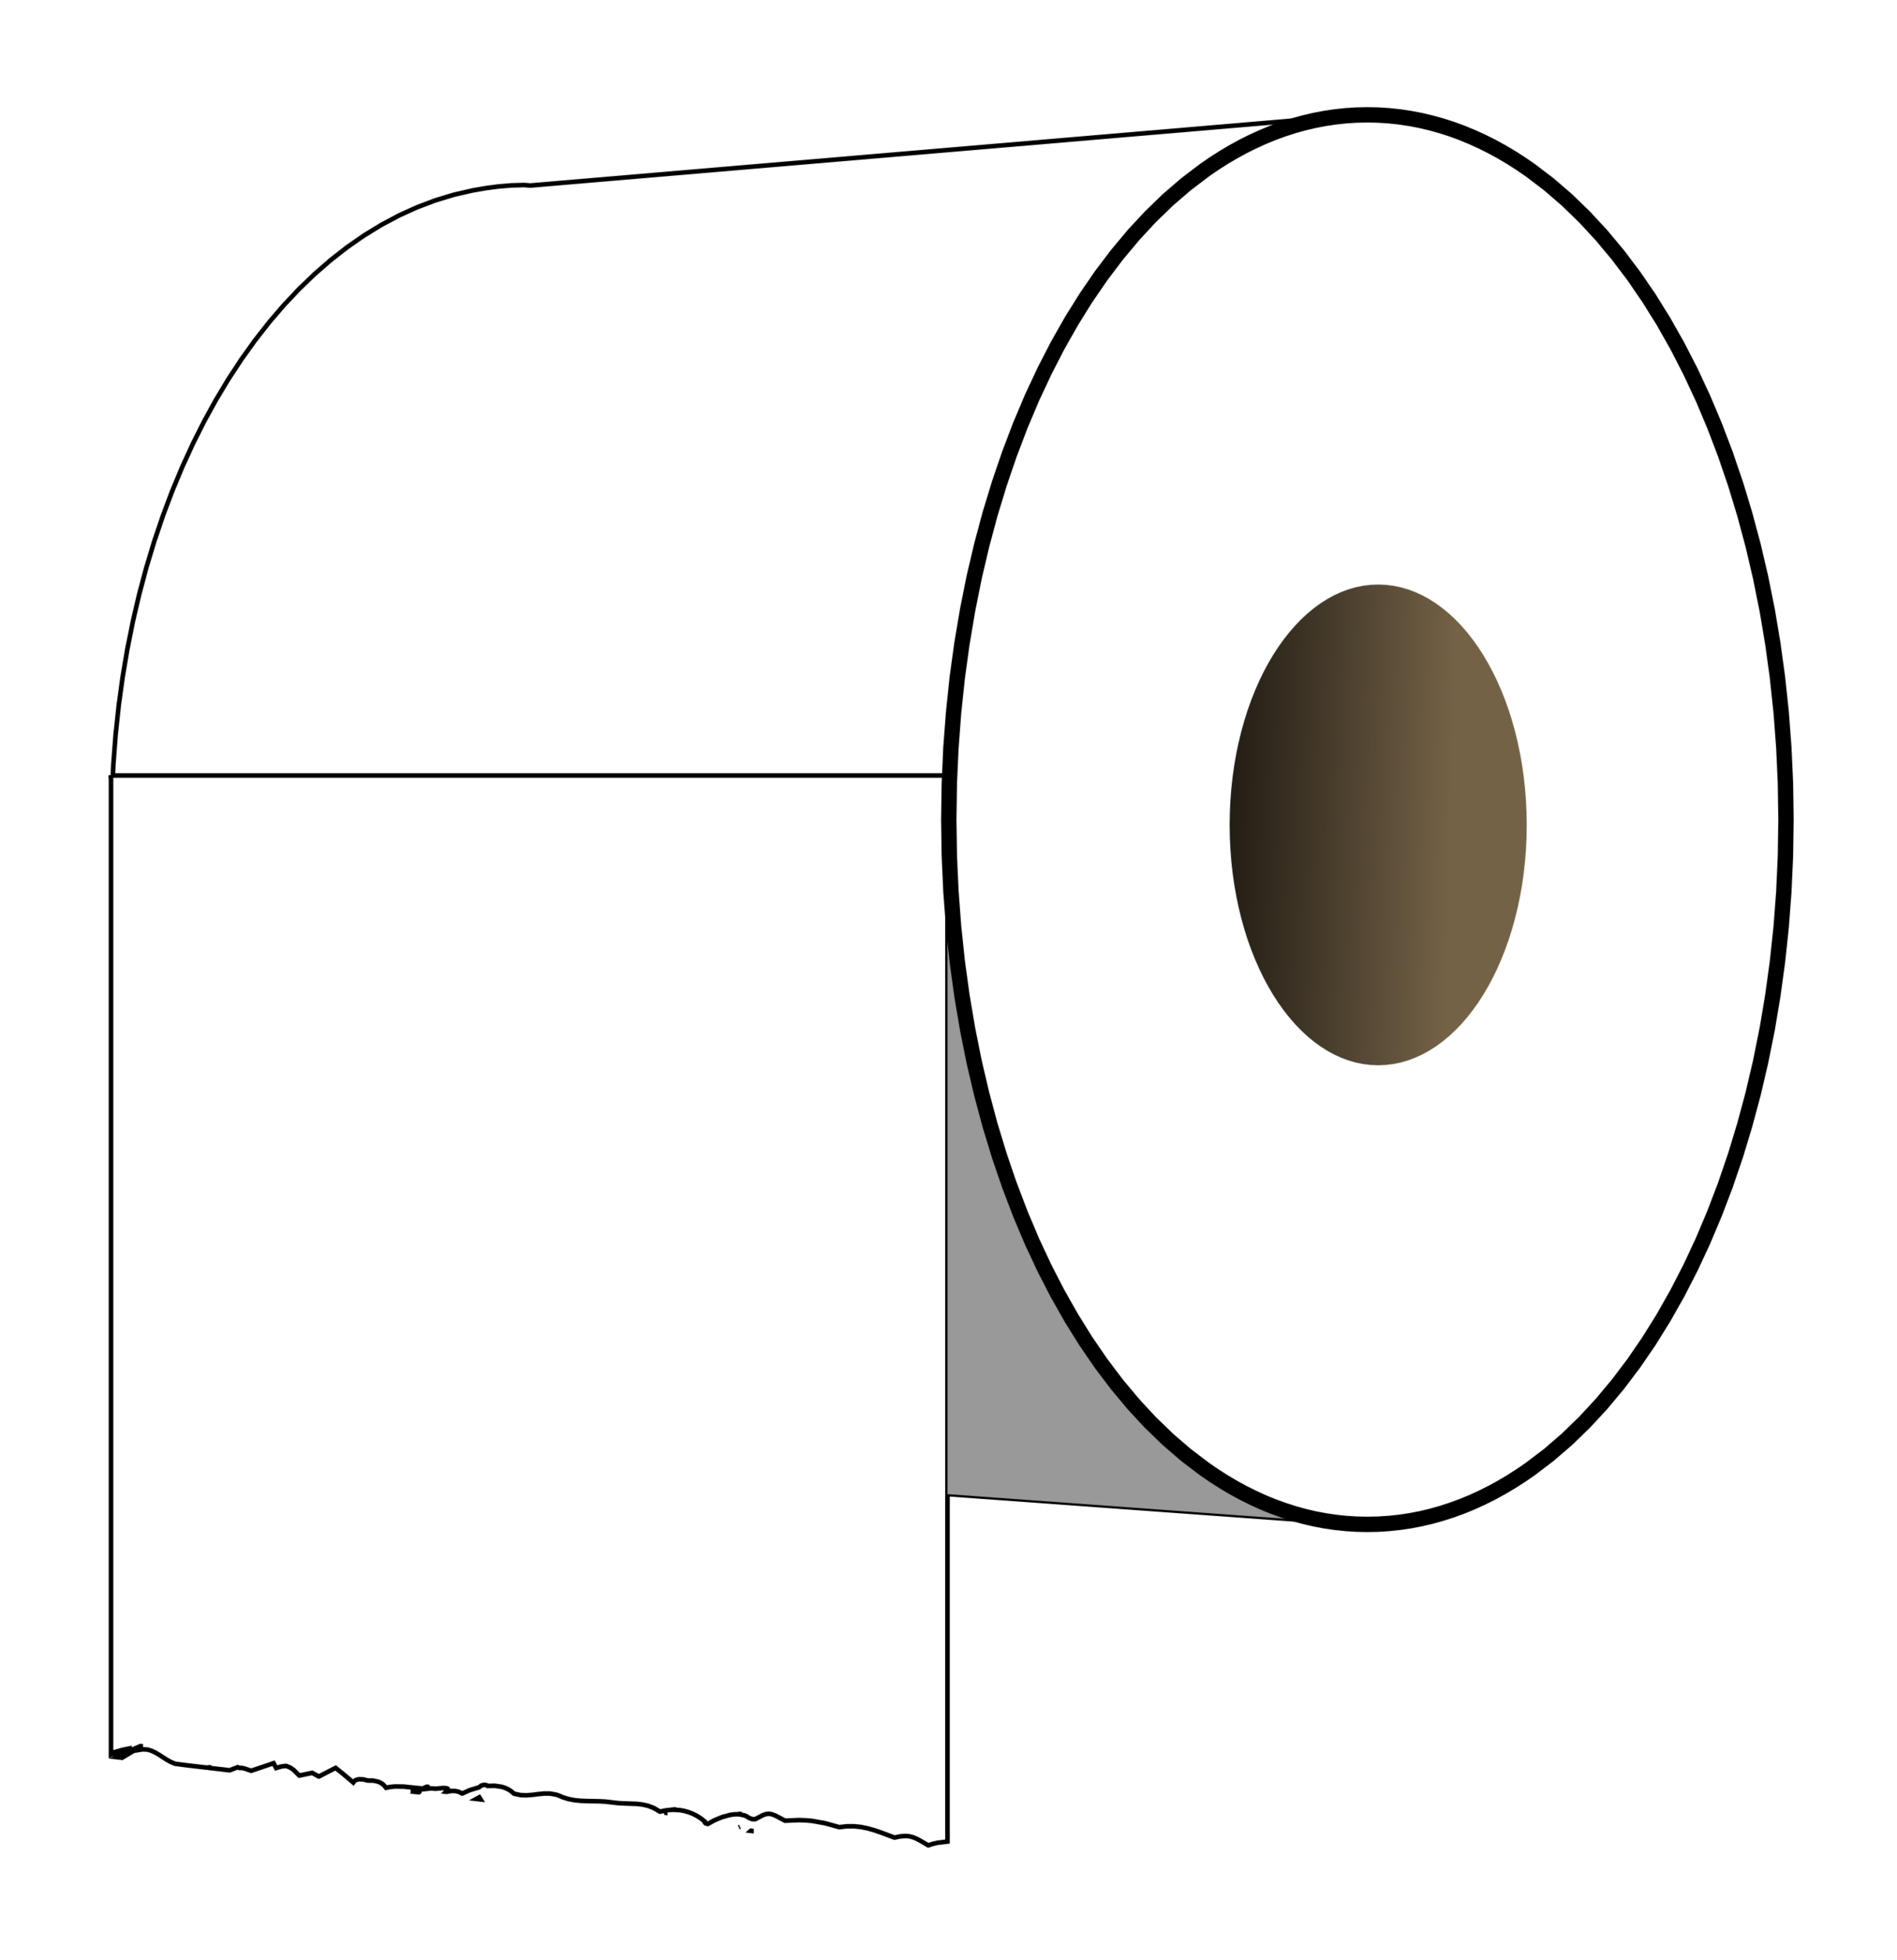 Clipart roll dimensions.